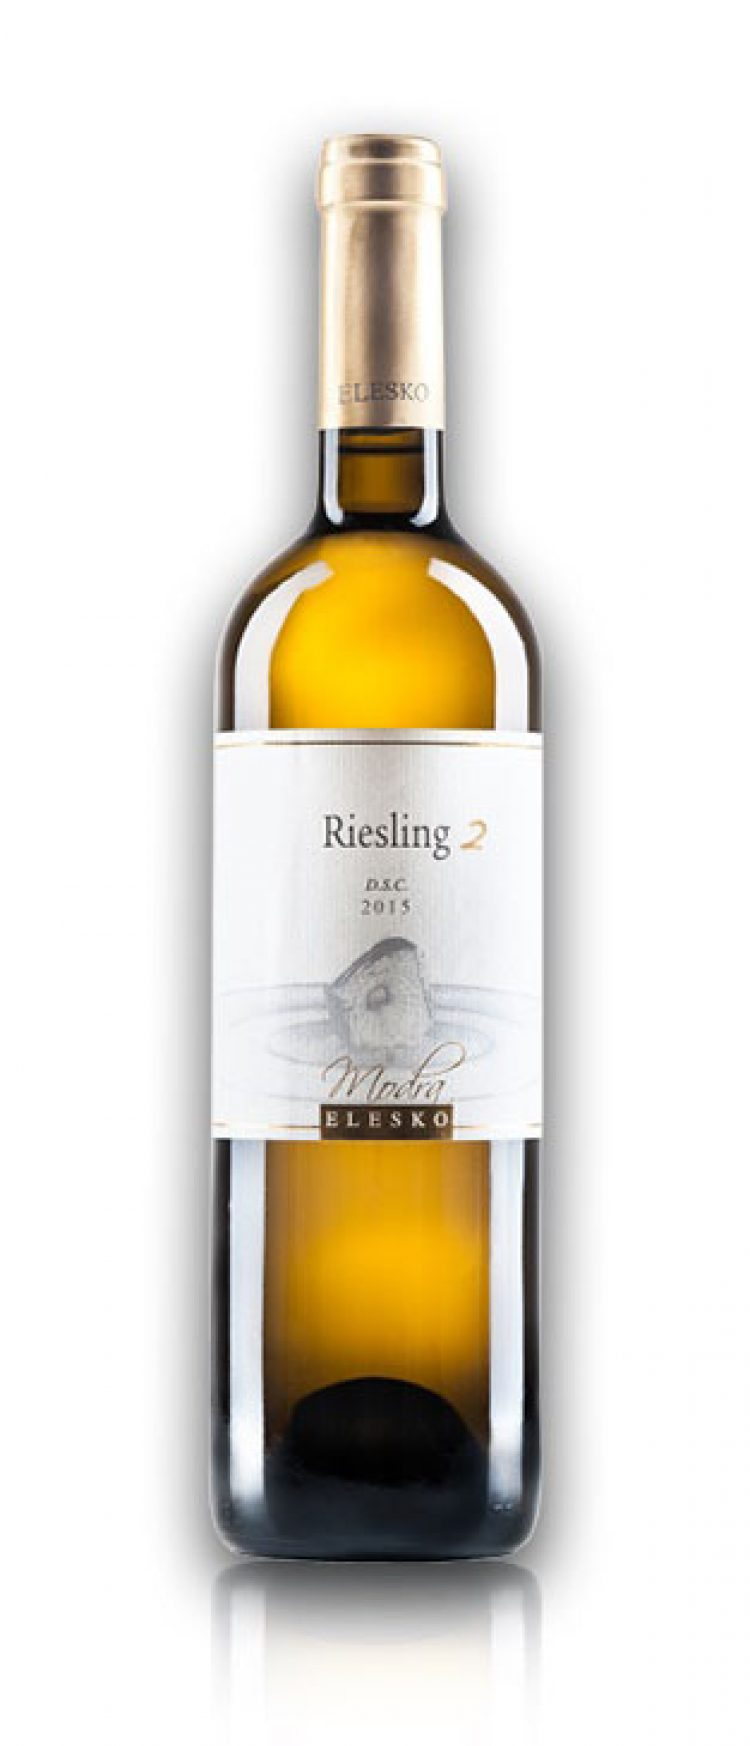 150x350_riesling_D.S.C._2015 copy